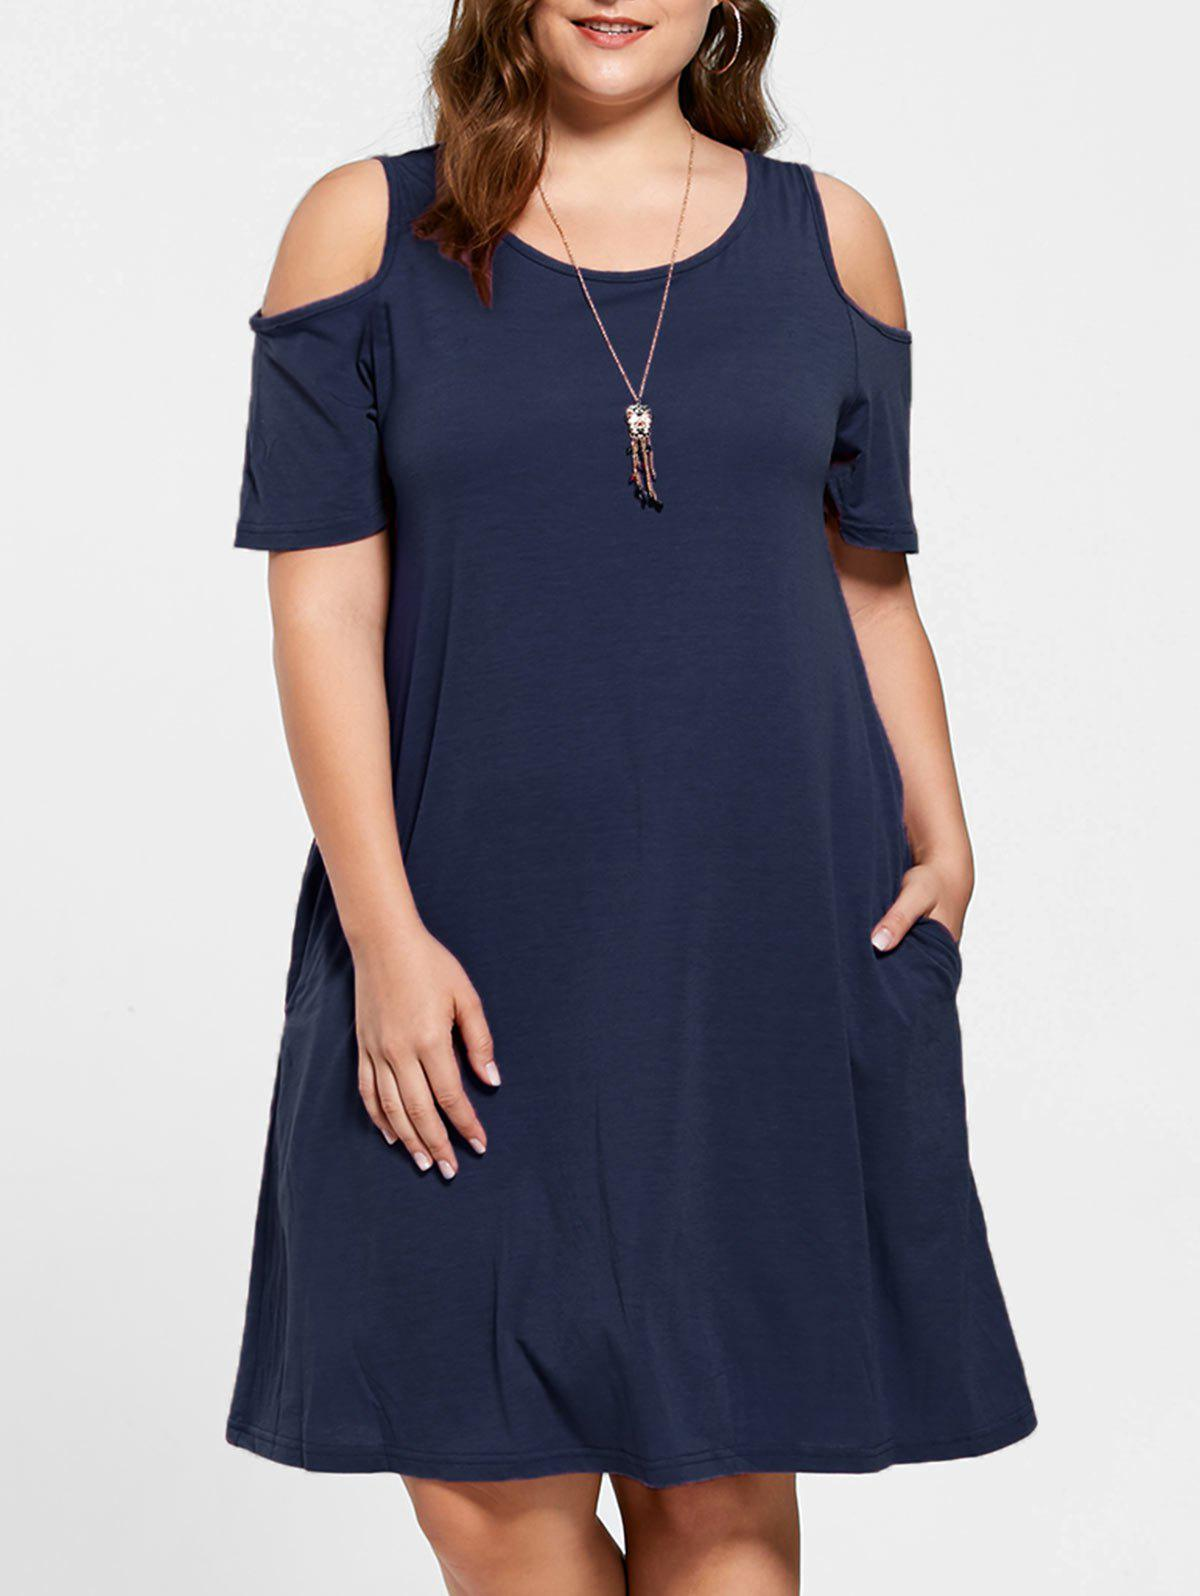 Tunic Cold Shoulder Plus Size DressWOMEN<br><br>Size: 7XL; Color: PURPLISH BLUE; Style: Casual; Material: Cotton,Polyester; Silhouette: A-Line; Dresses Length: Knee-Length; Neckline: Round Collar; Sleeve Length: Short Sleeves; Pattern Type: Solid; With Belt: No; Season: Fall,Summer; Weight: 0.3000kg; Package Contents: 1 x Dress;